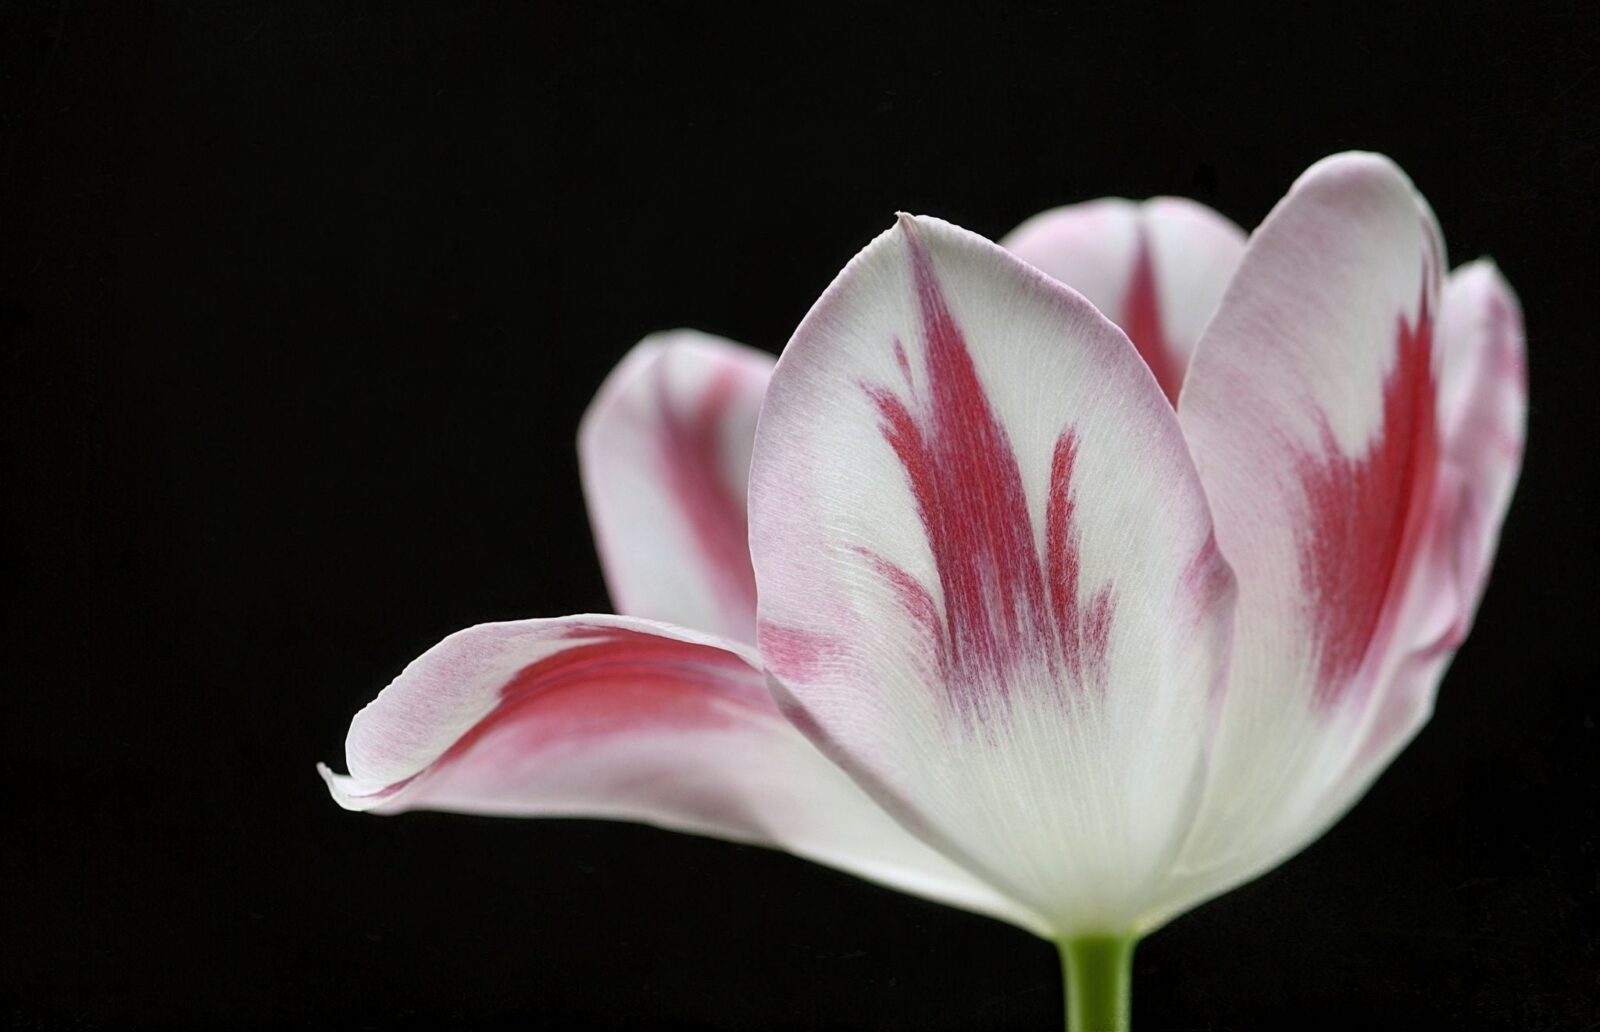 Tulip black theme High Quality wallpapers